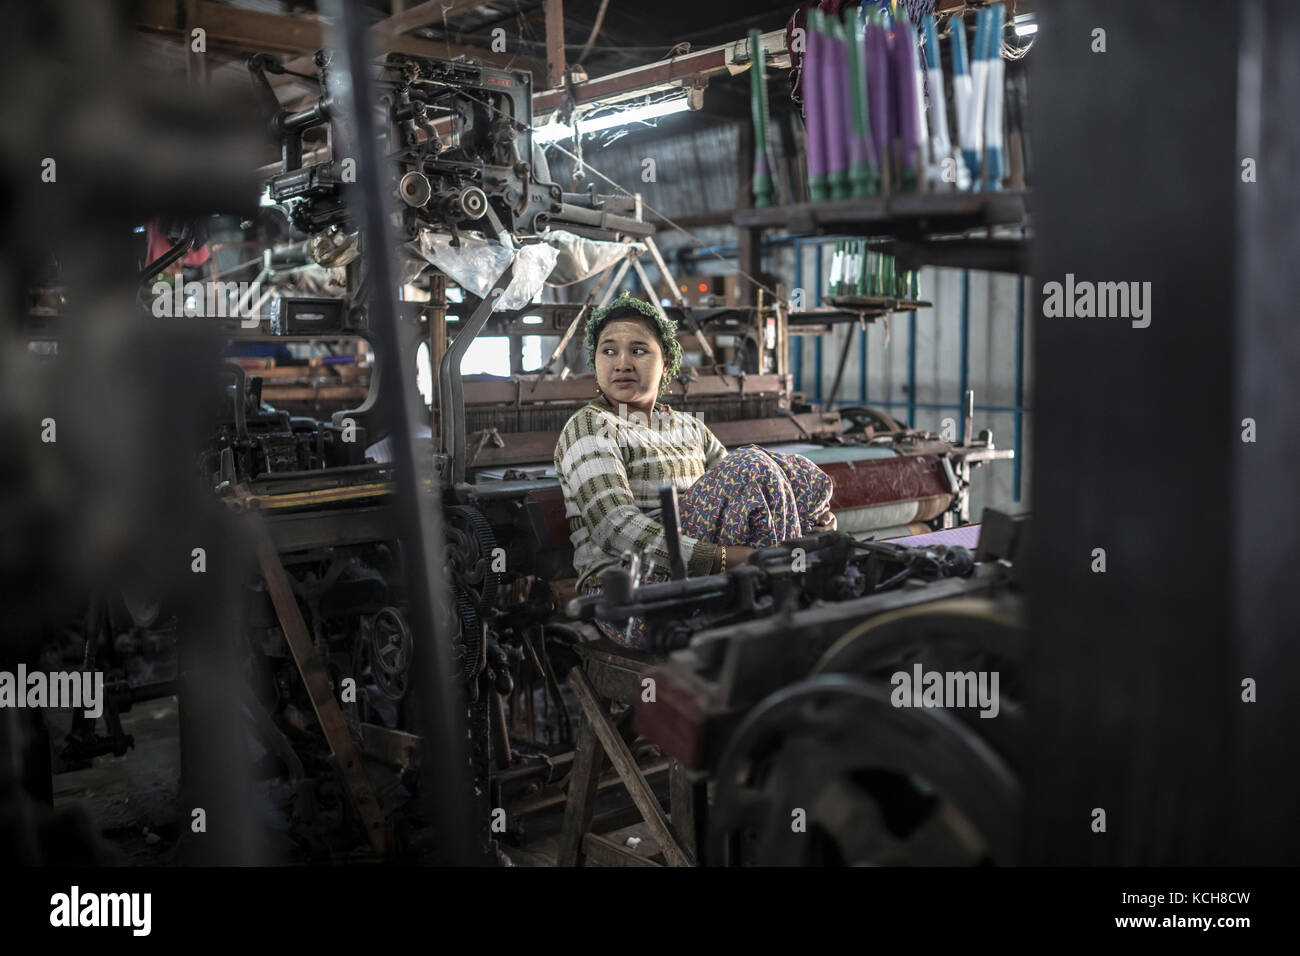 MANDALAY, MYANMAR - JANUARY 11, 2016: Unidentified woman in a small silk factory on the outskirts of Mandalay, Myanmar - Stock Image